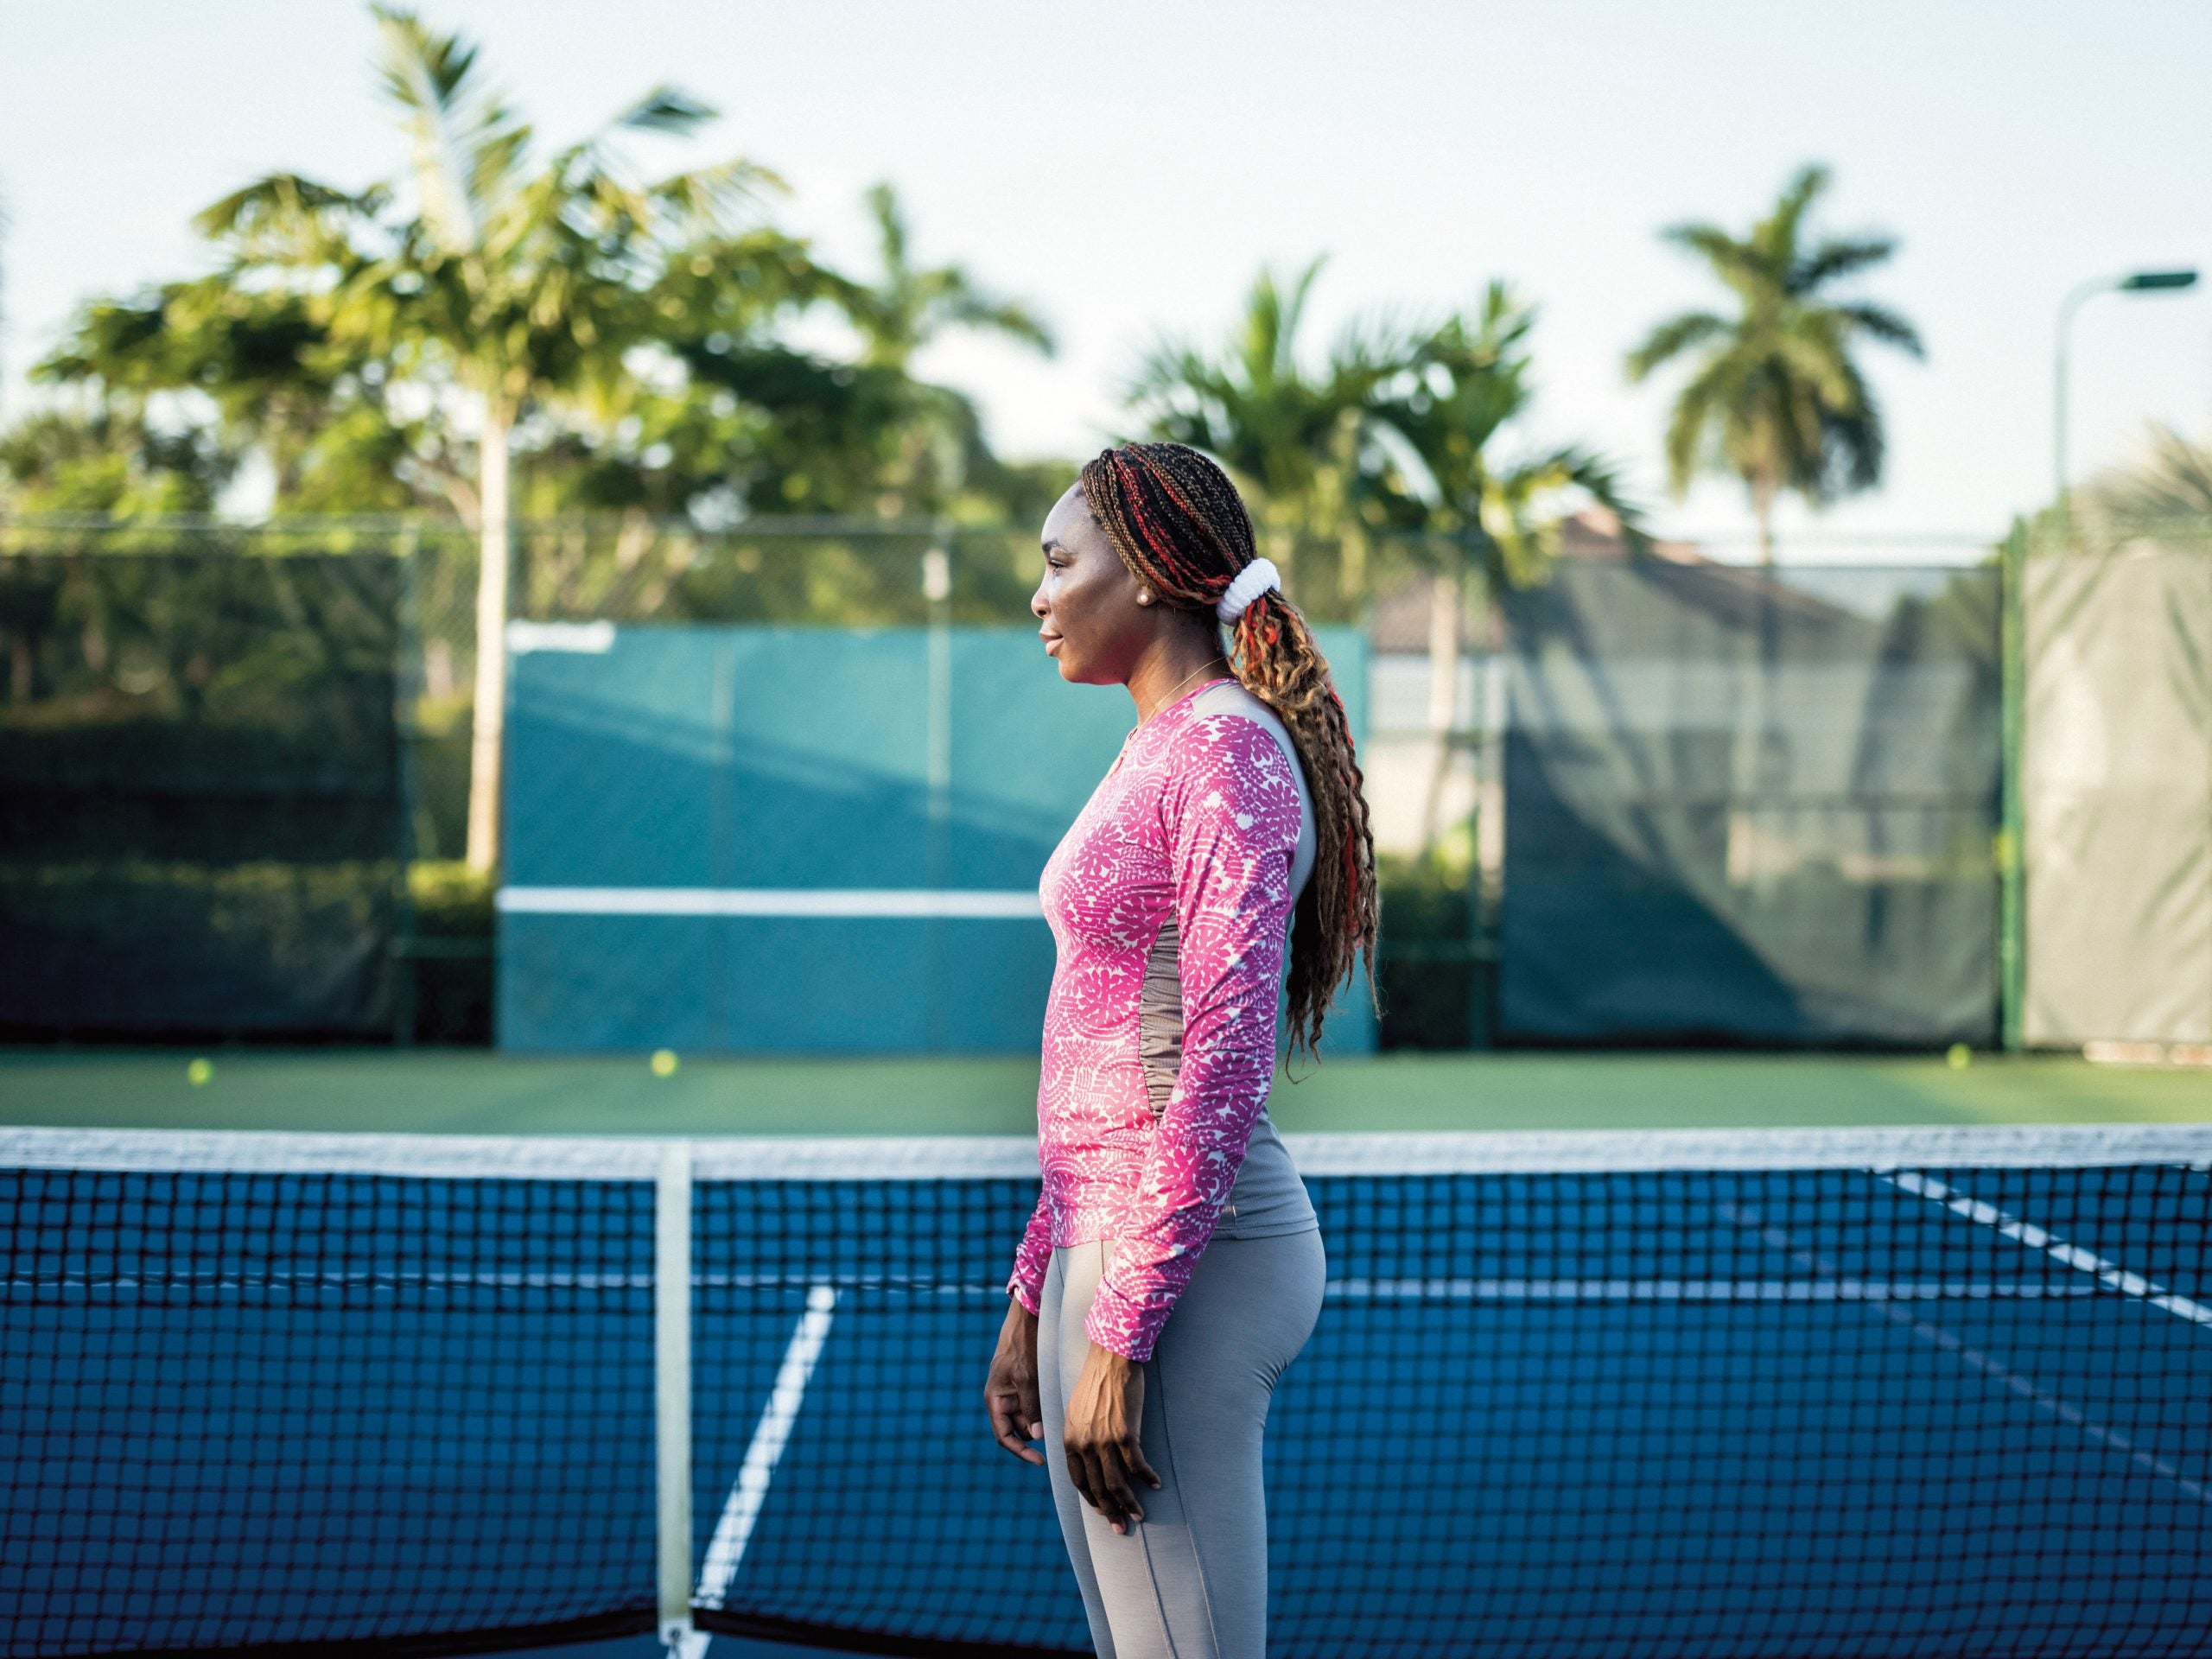 Personal Story: Venus Williams and me